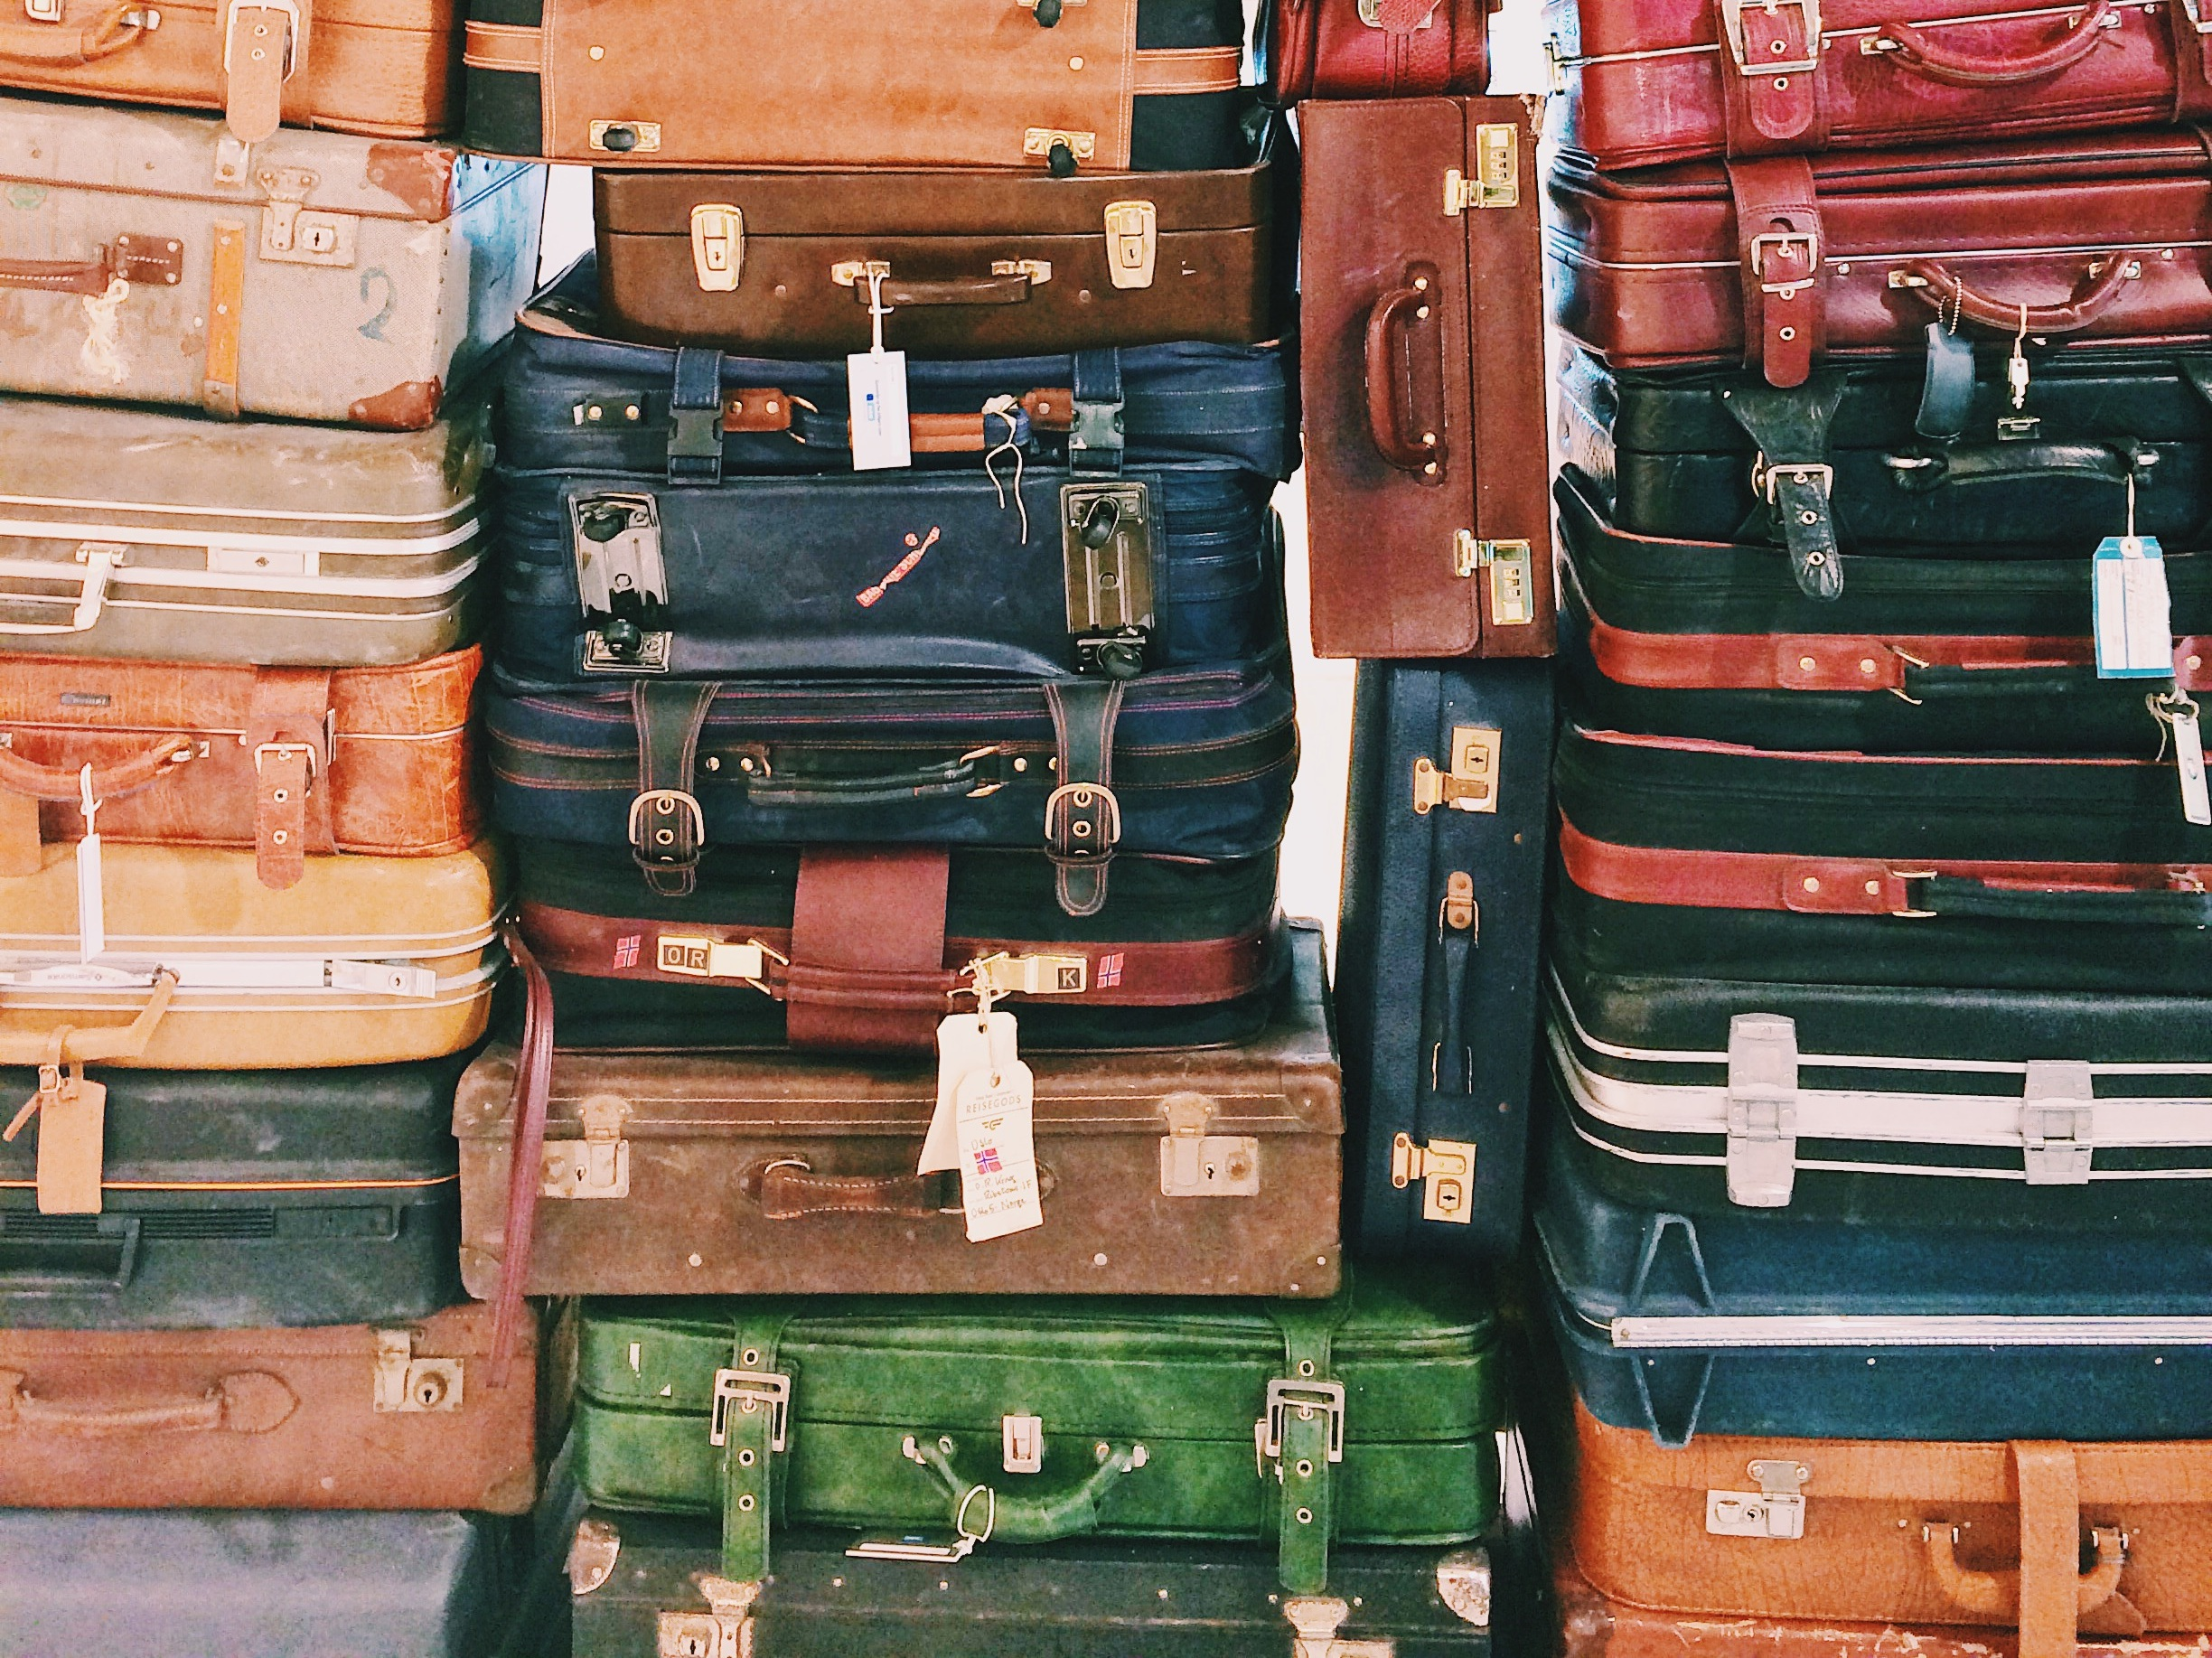 Stacks of suitcases